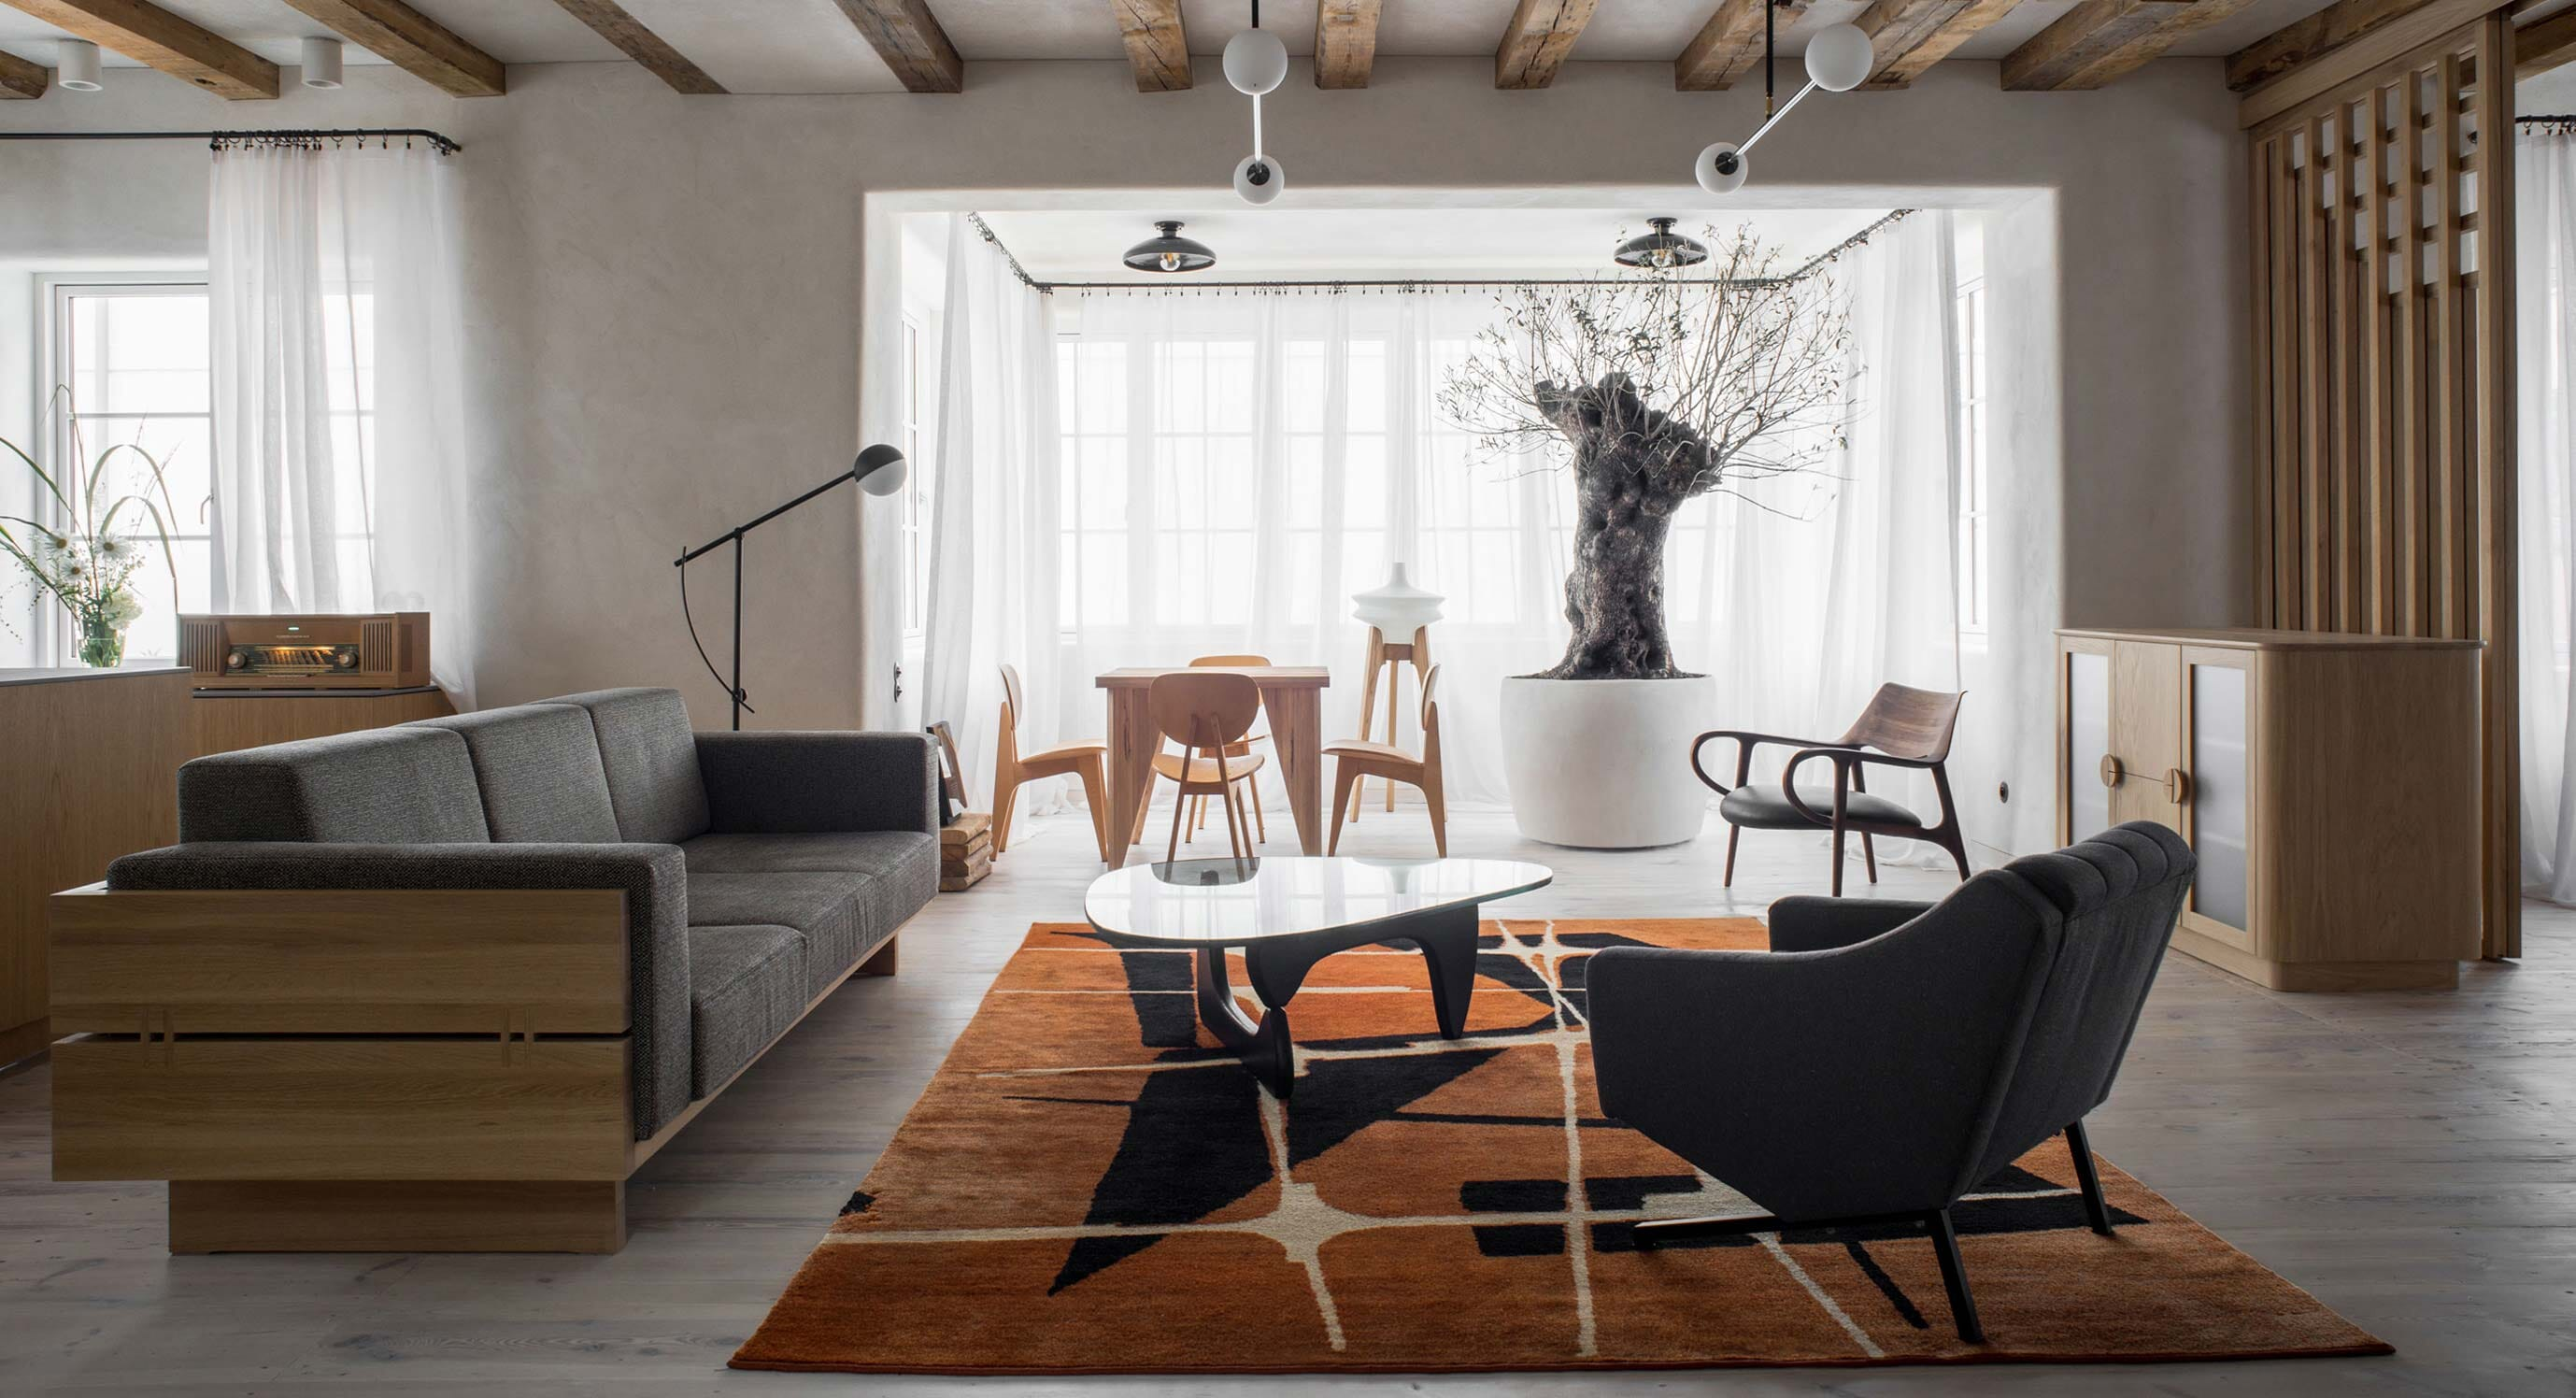 House From 1923: Imperfection is beauty